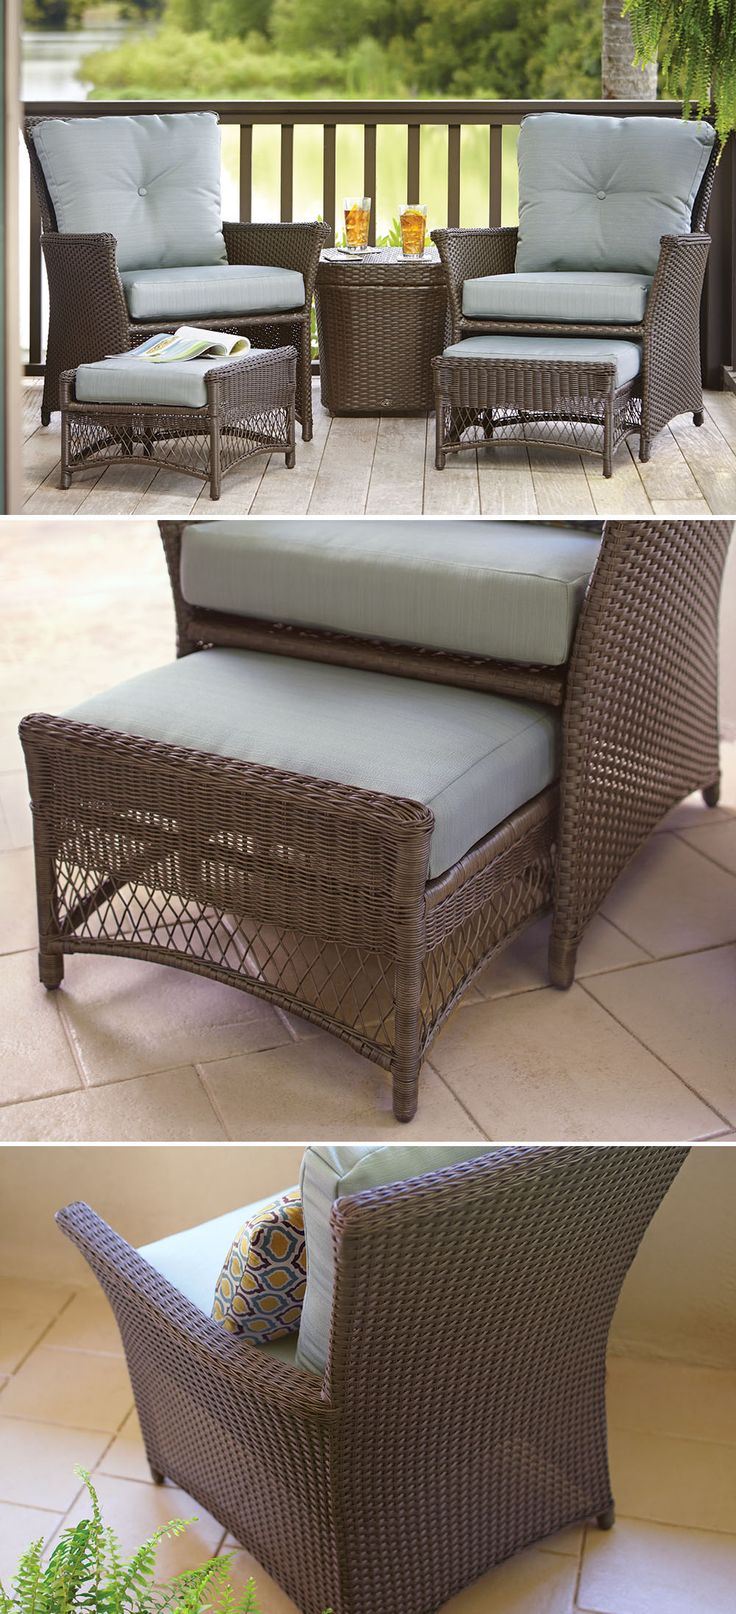 This affordable patio set is just the right size for your small patio, balcony or porch. It includes two stationary chairs, cushions, two lumbar pillows, two nested ottomans and a side table. The table offers ample storage, too.